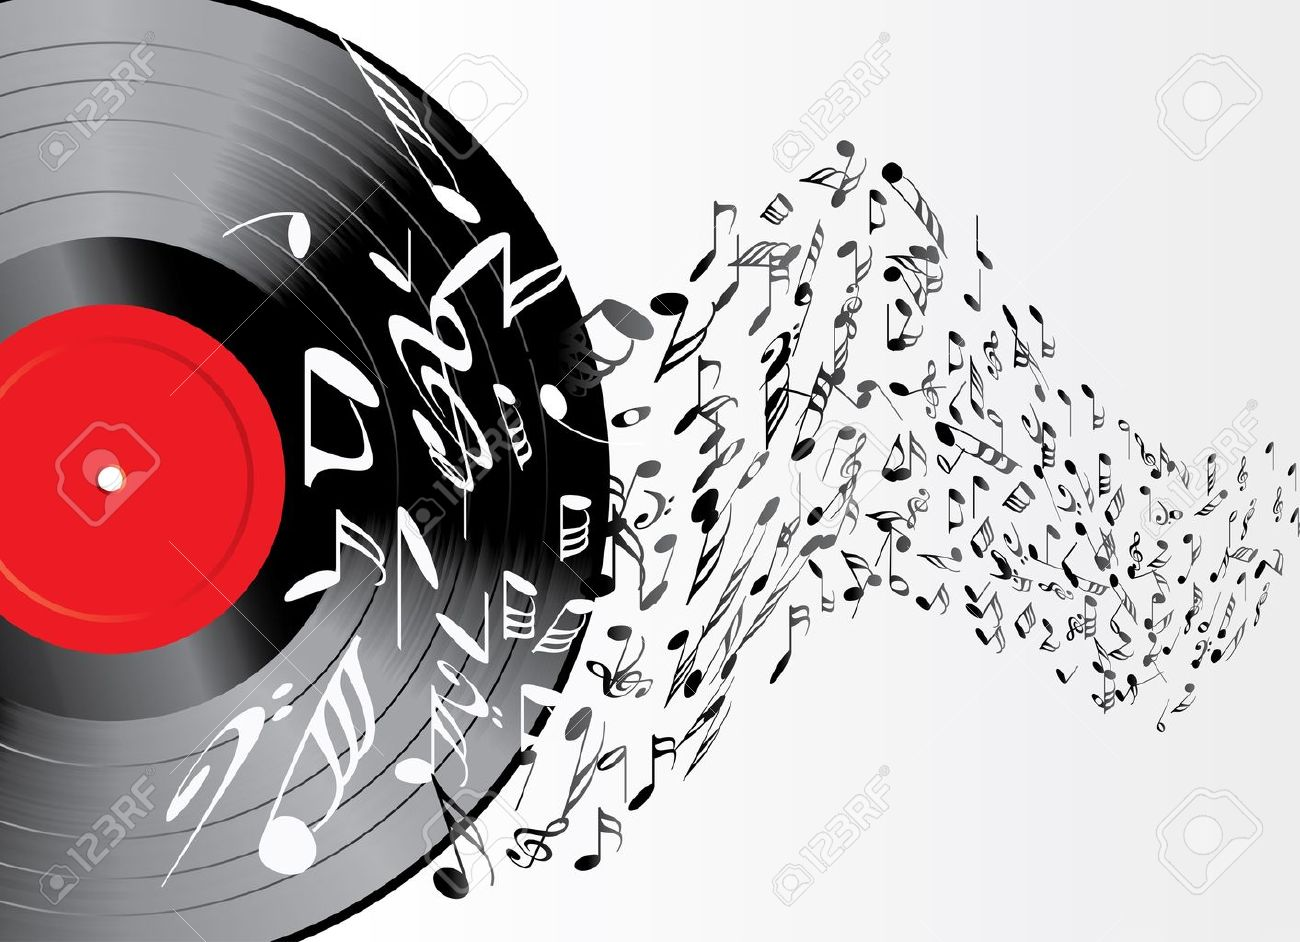 Music Background With Vinyl Record Royalty Free Cliparts, Vectors ...